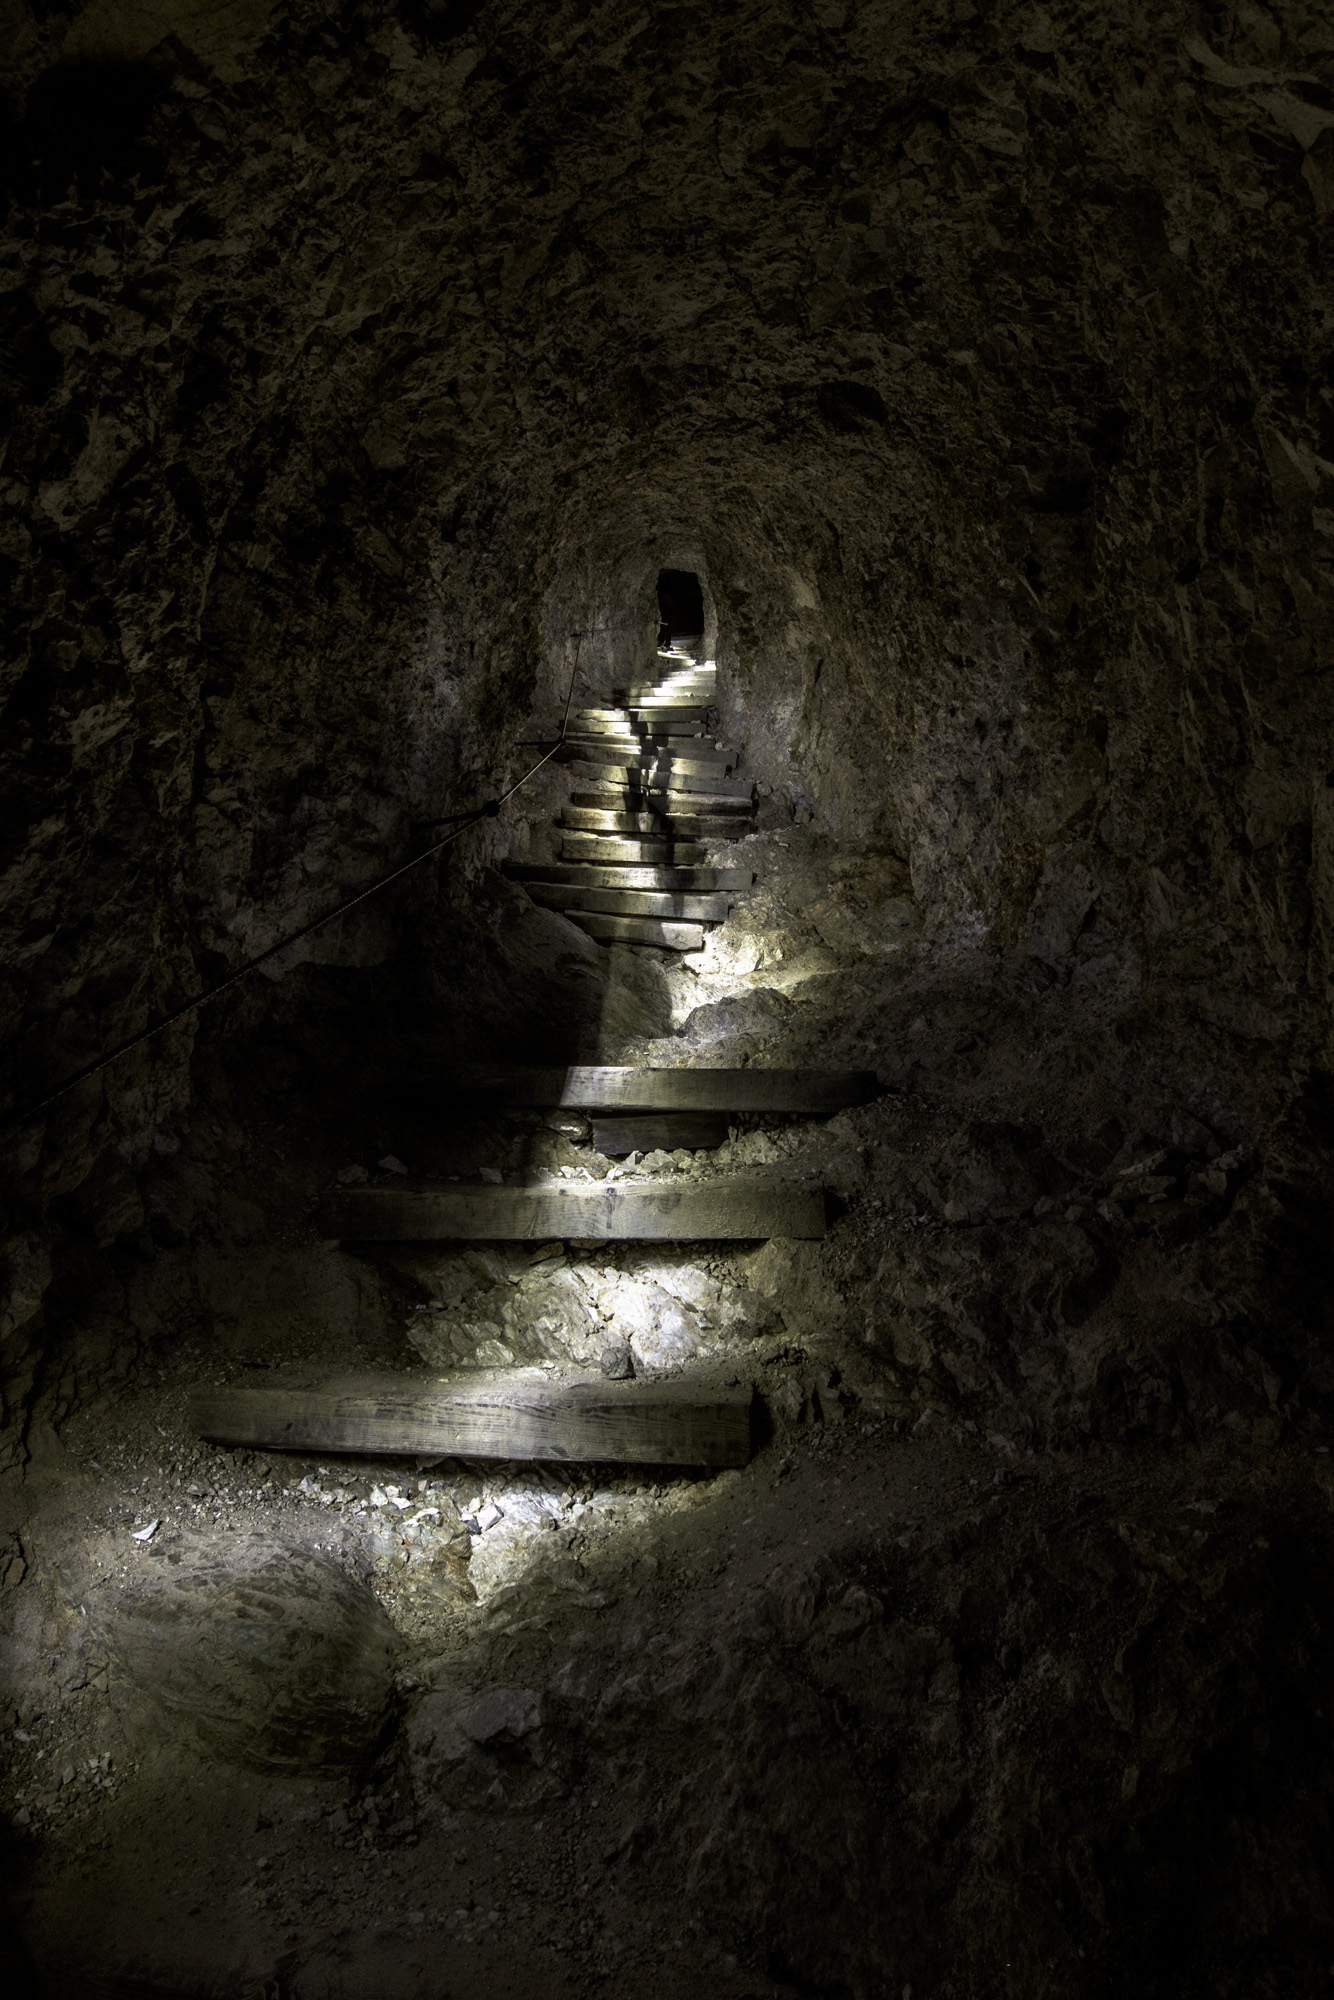 A walker ascends the tunnels. Nikon D810, 14-24mm at 14mm, ISO 100, 46s at f/9, tripod.